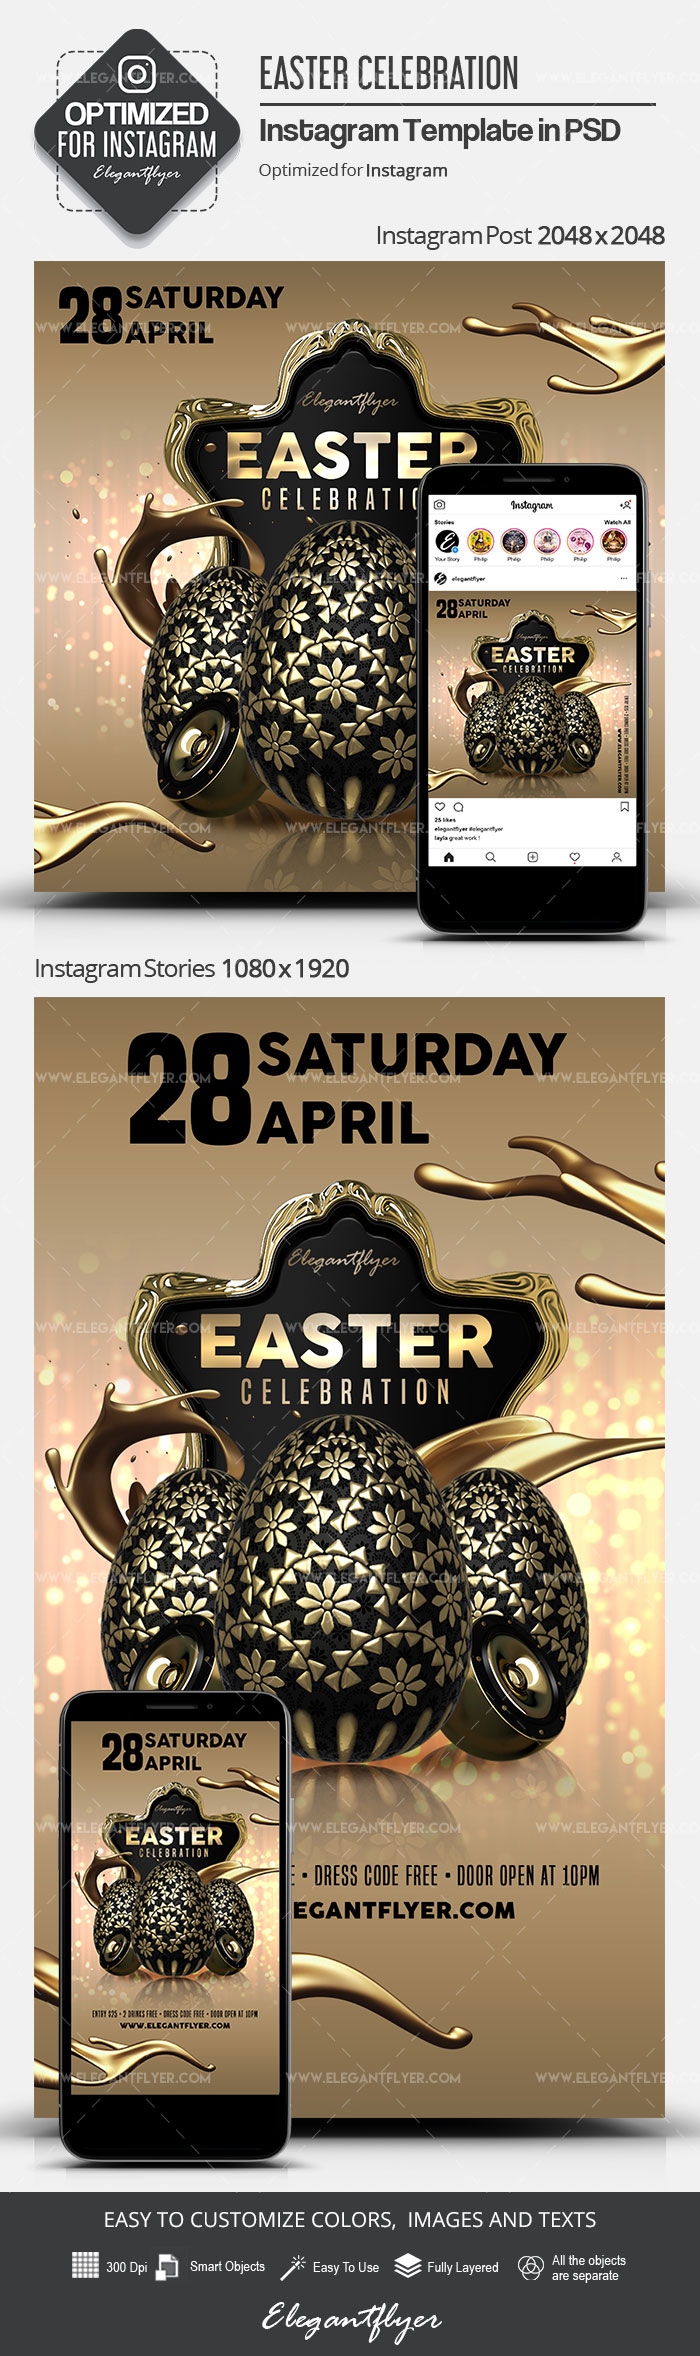 Easter Celebration – Instagram Stories Template in PSD + Post Templates